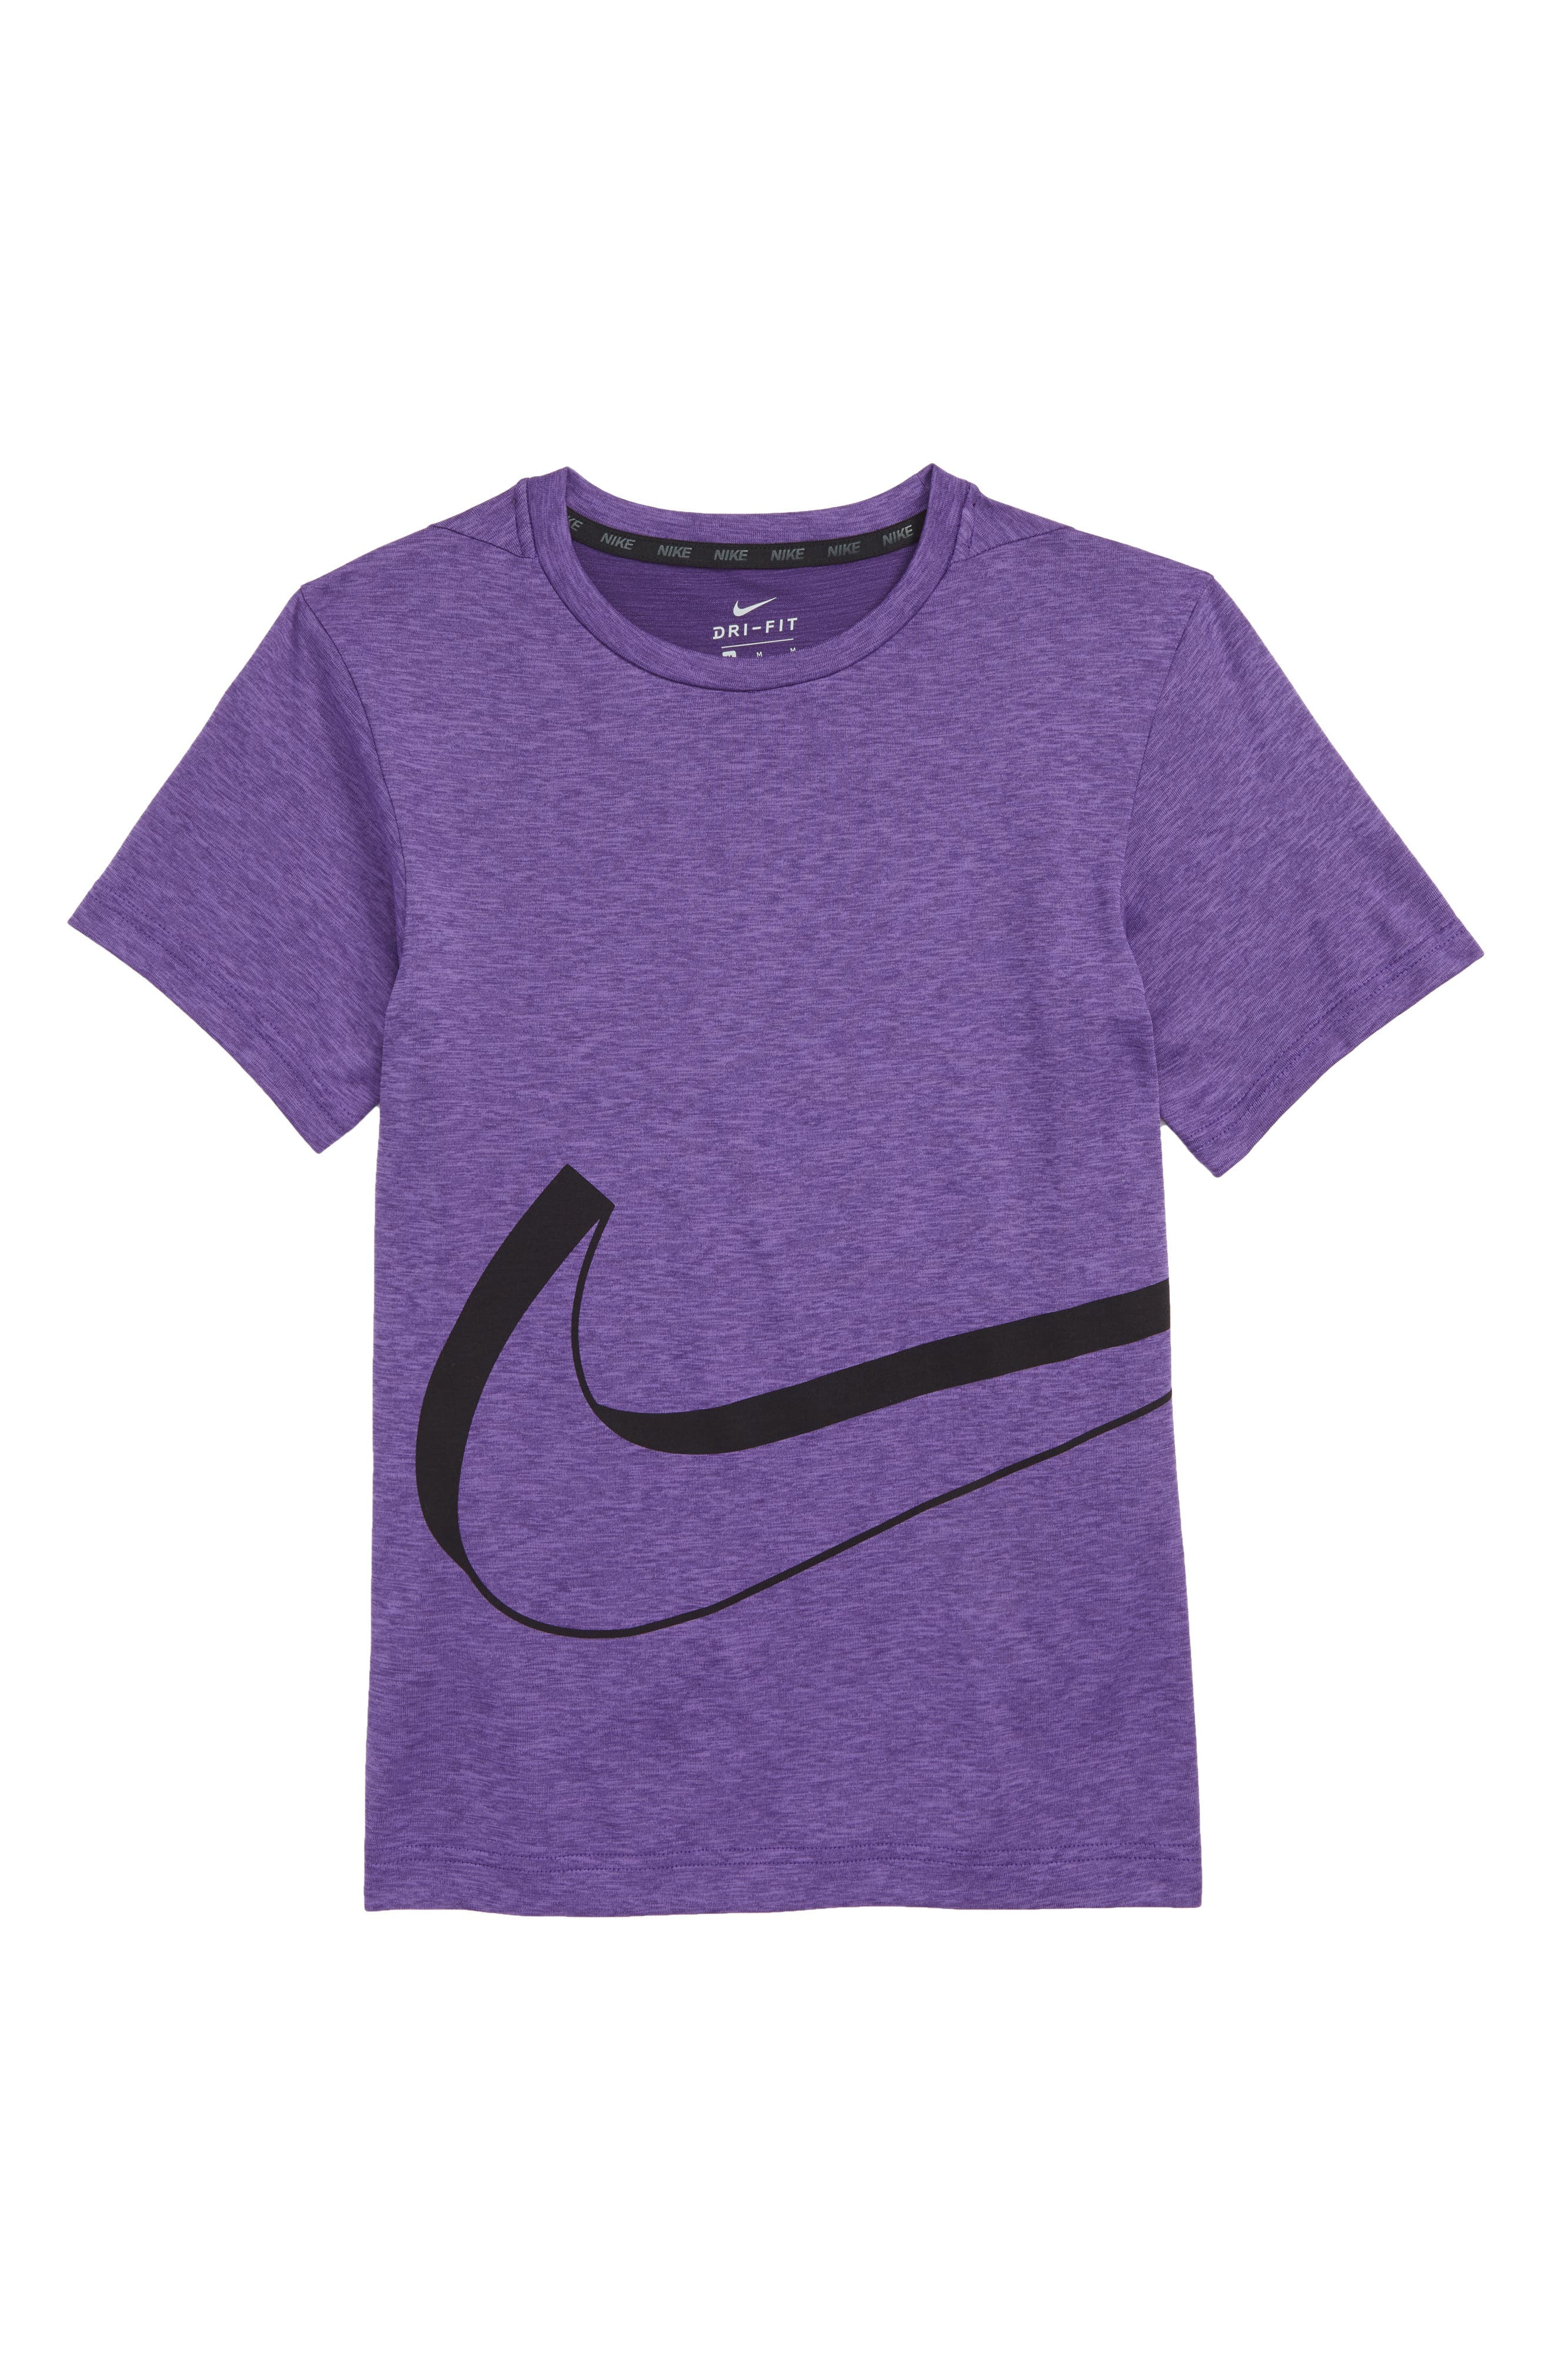 Dry Graphic T-Shirt,                             Main thumbnail 1, color,                             COURT PURPLE/ ACTION GRAPE